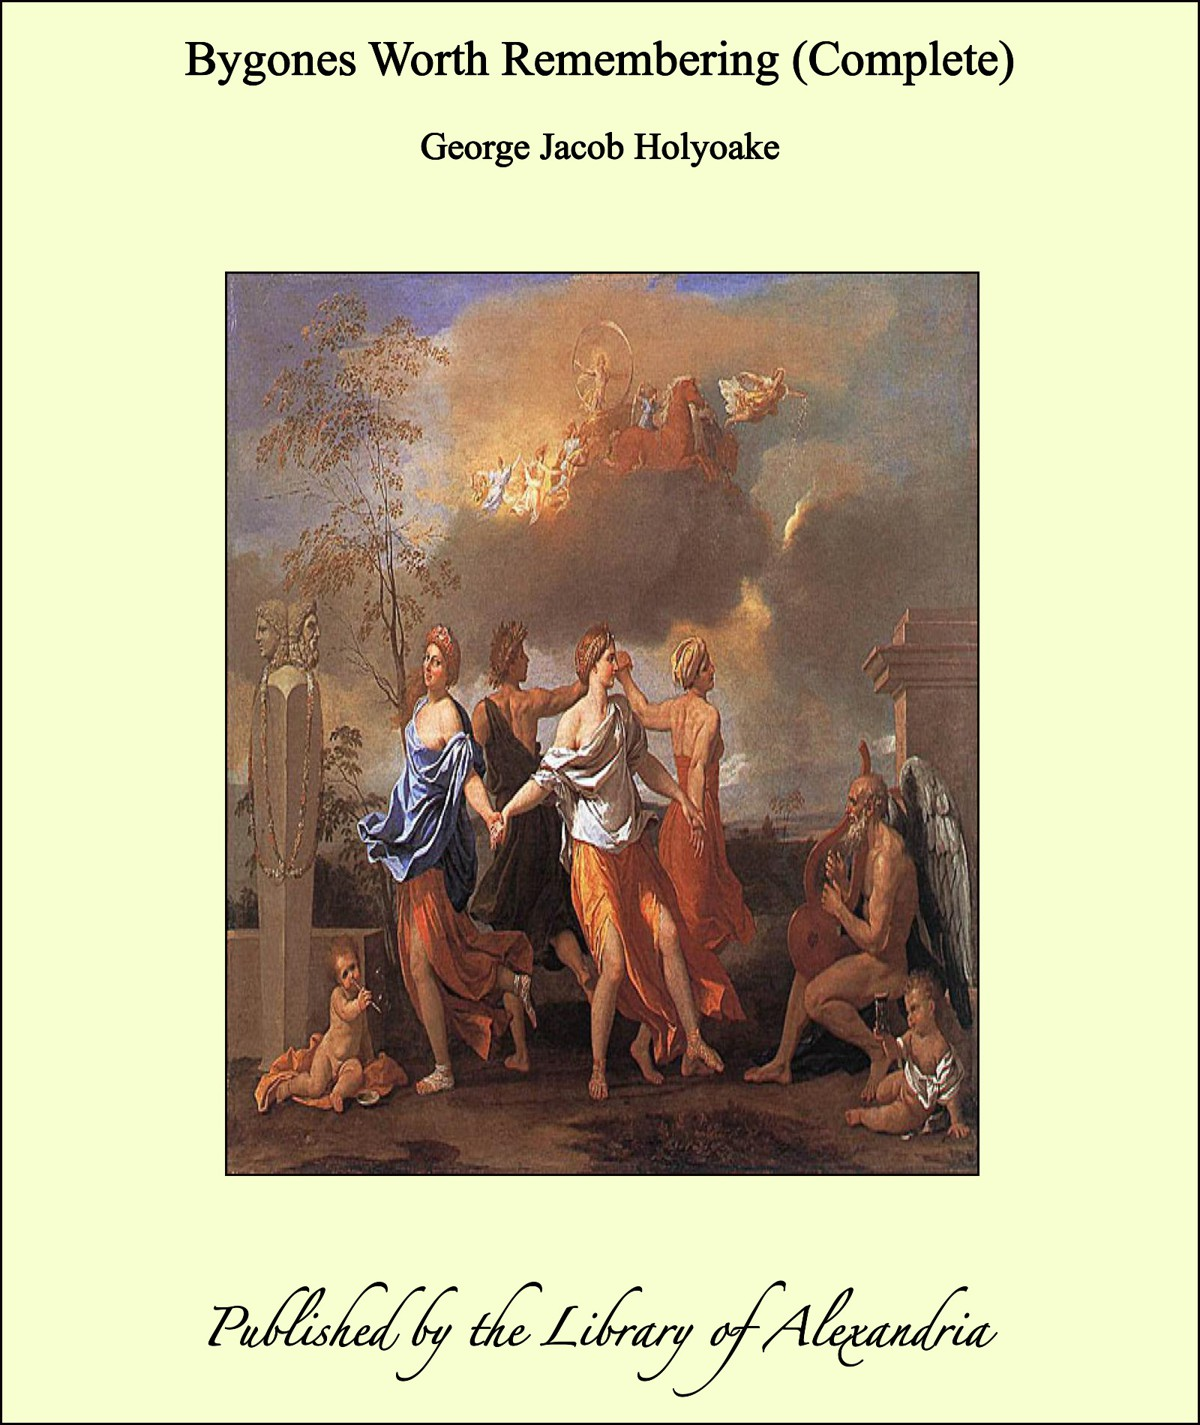 George Jacob Holyoake - Bygones Worth Remembering (Complete)